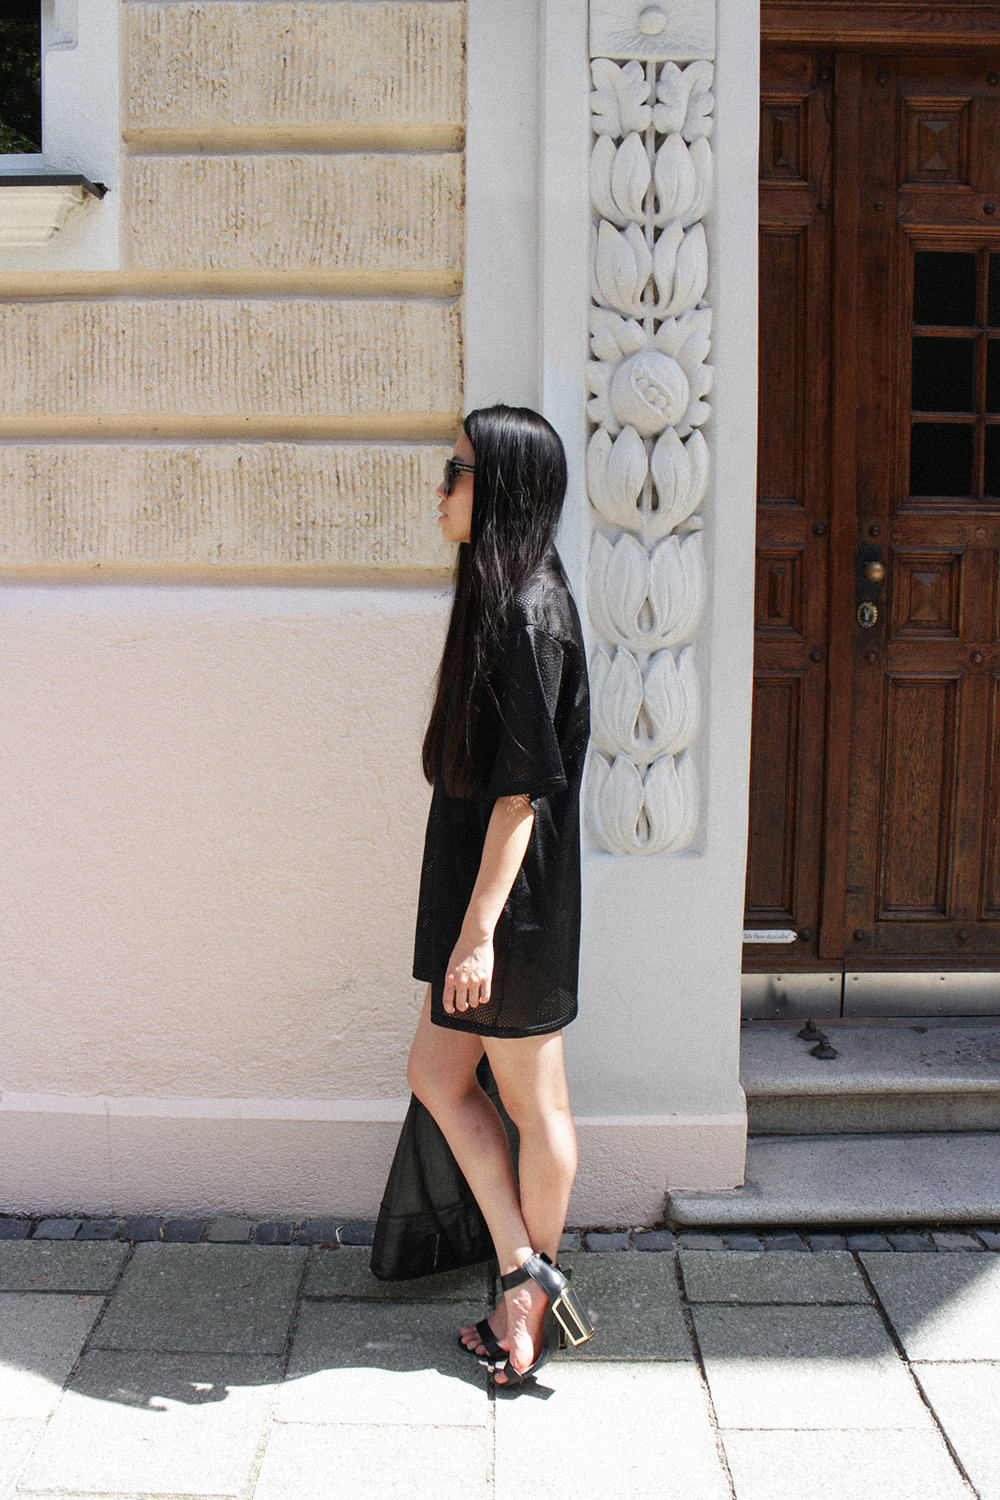 IHEARTALICE.DE – Fashion & Travel Blog: How to wear All Black Everything in Summer?